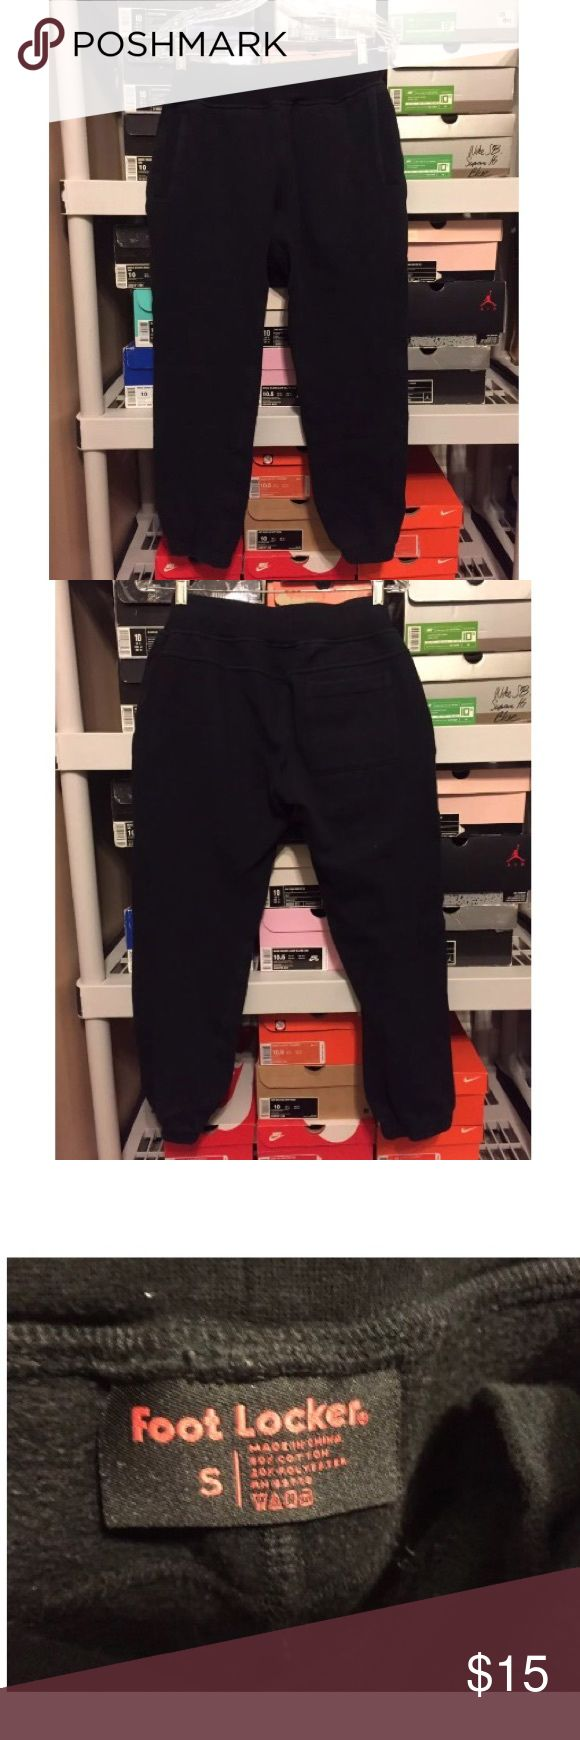 Men's footlocker black sweat pants size Small Men's footlocker black sweatpants   Size Small  Good condition has slight fading!  Waist: 35cm.  Length 91cm. If you have any questions please message me! Thanks! Check out my other items for sale! footlocker Pants Sweatpants & Joggers